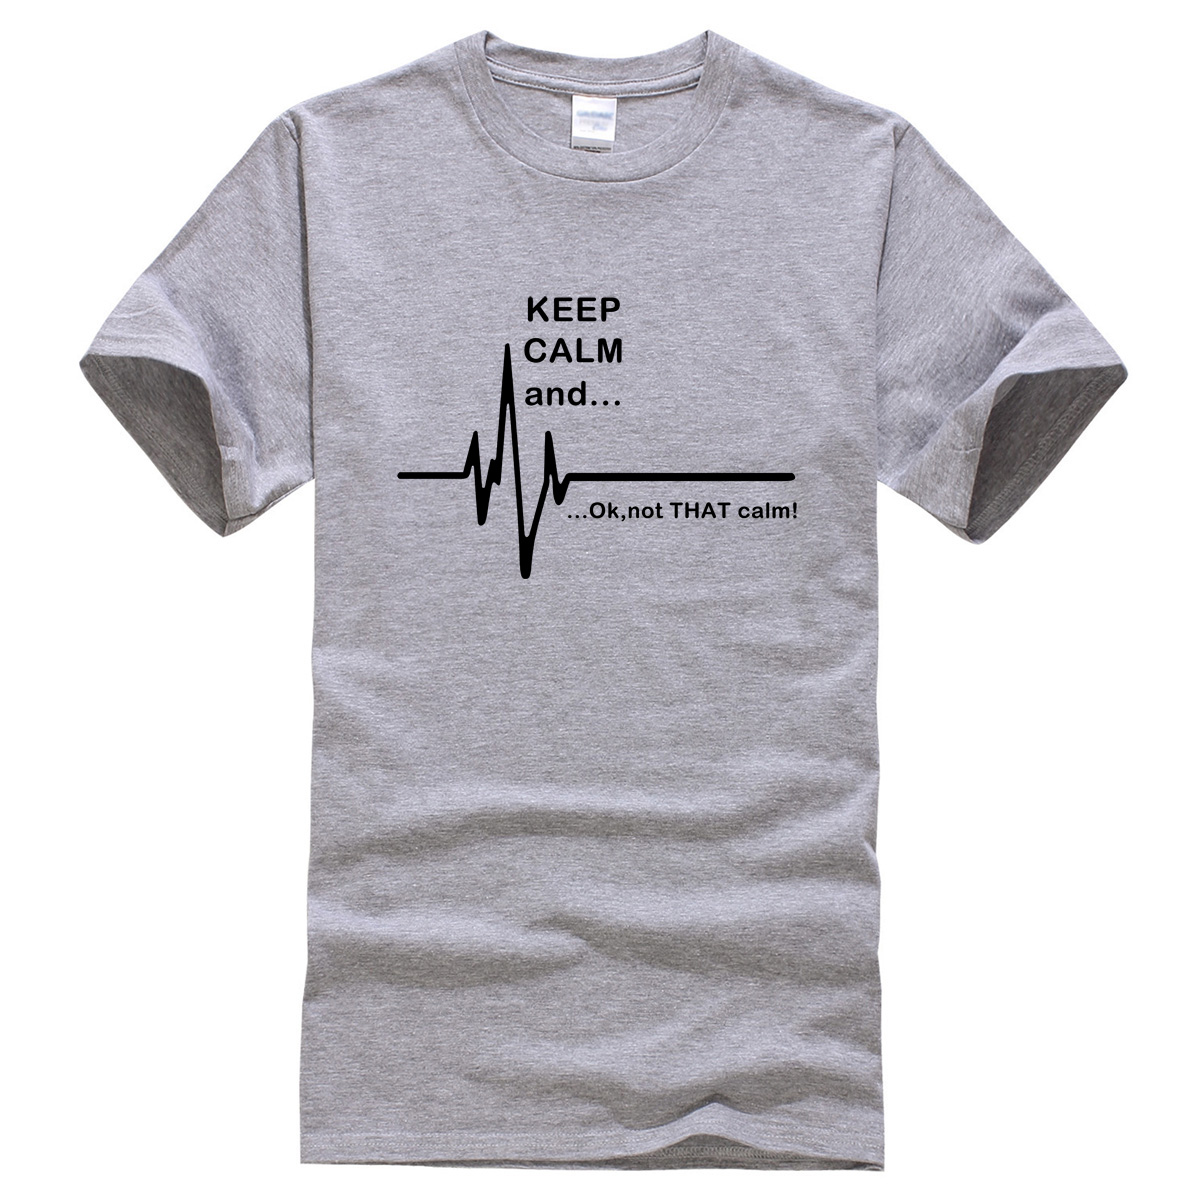 2017 summer T-shirts Keep Calm and...Not That Calm Funny EKG Heart Rate brand clothing men's T-shirt harajuku crossfit t shirt